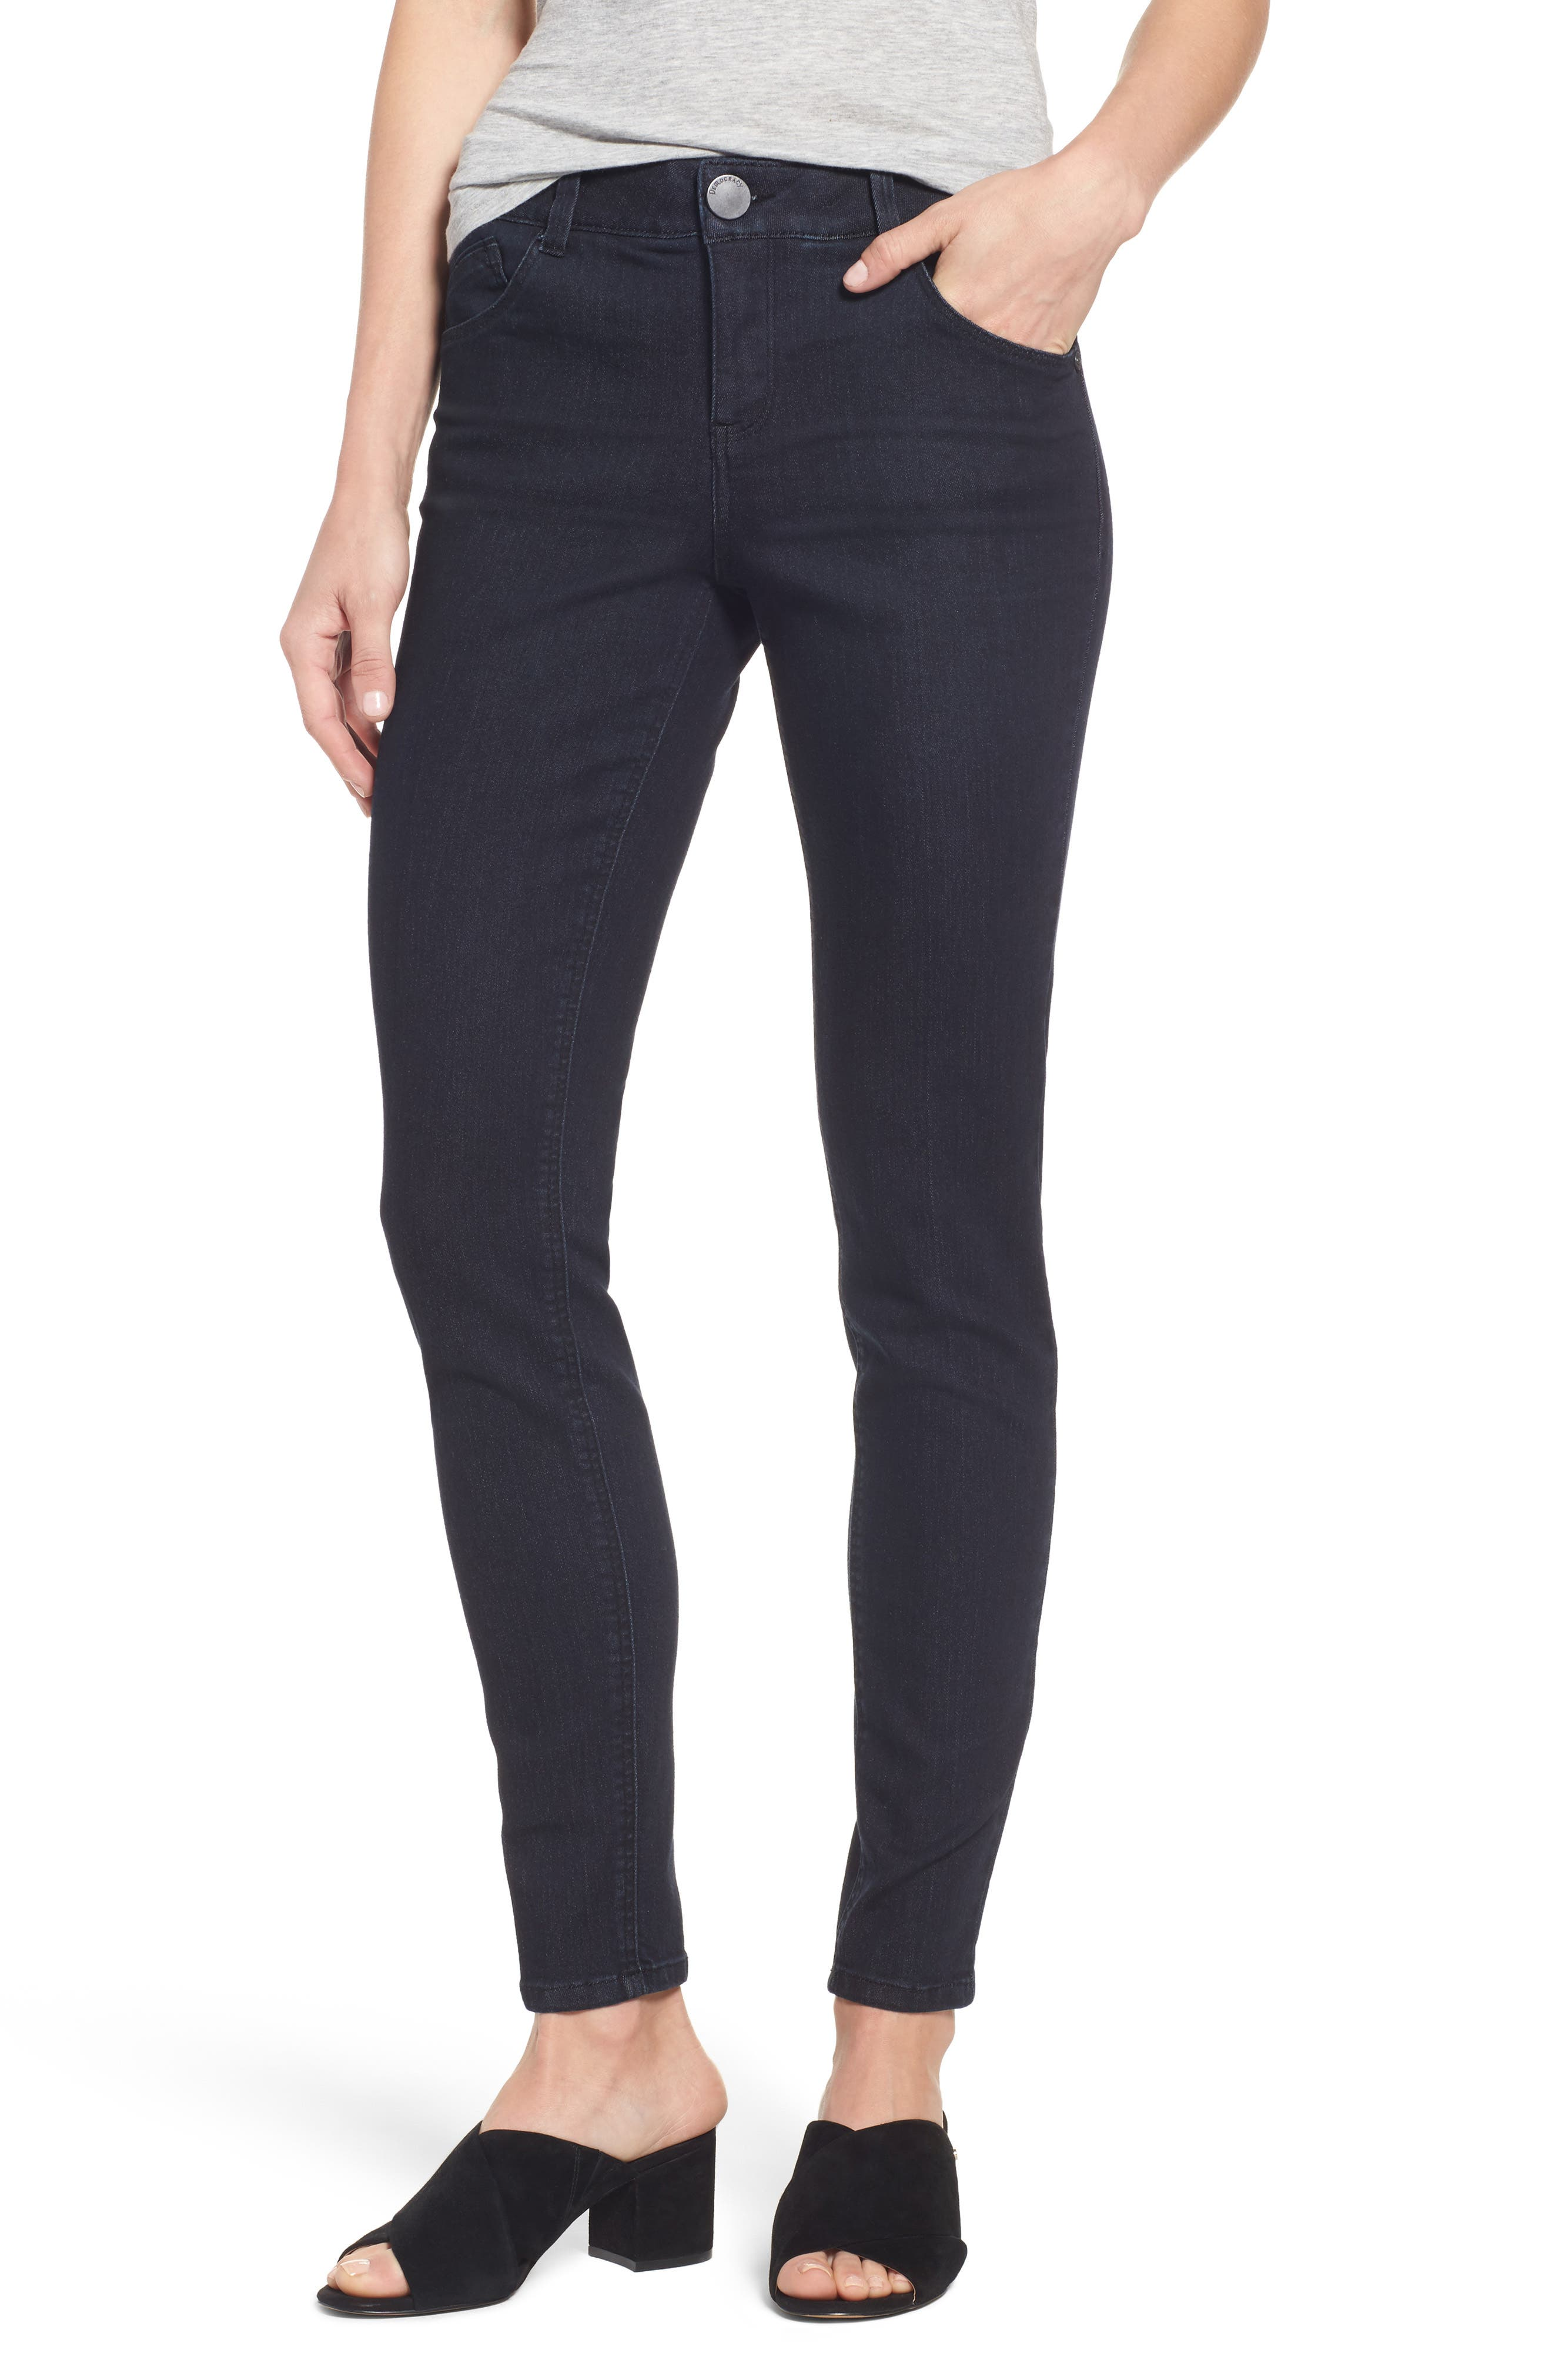 Main Image - Wit & Wisdom Ab-solution Stretch Skinny Jeans (Regular & Petite)(Nordstrom Exclusive)